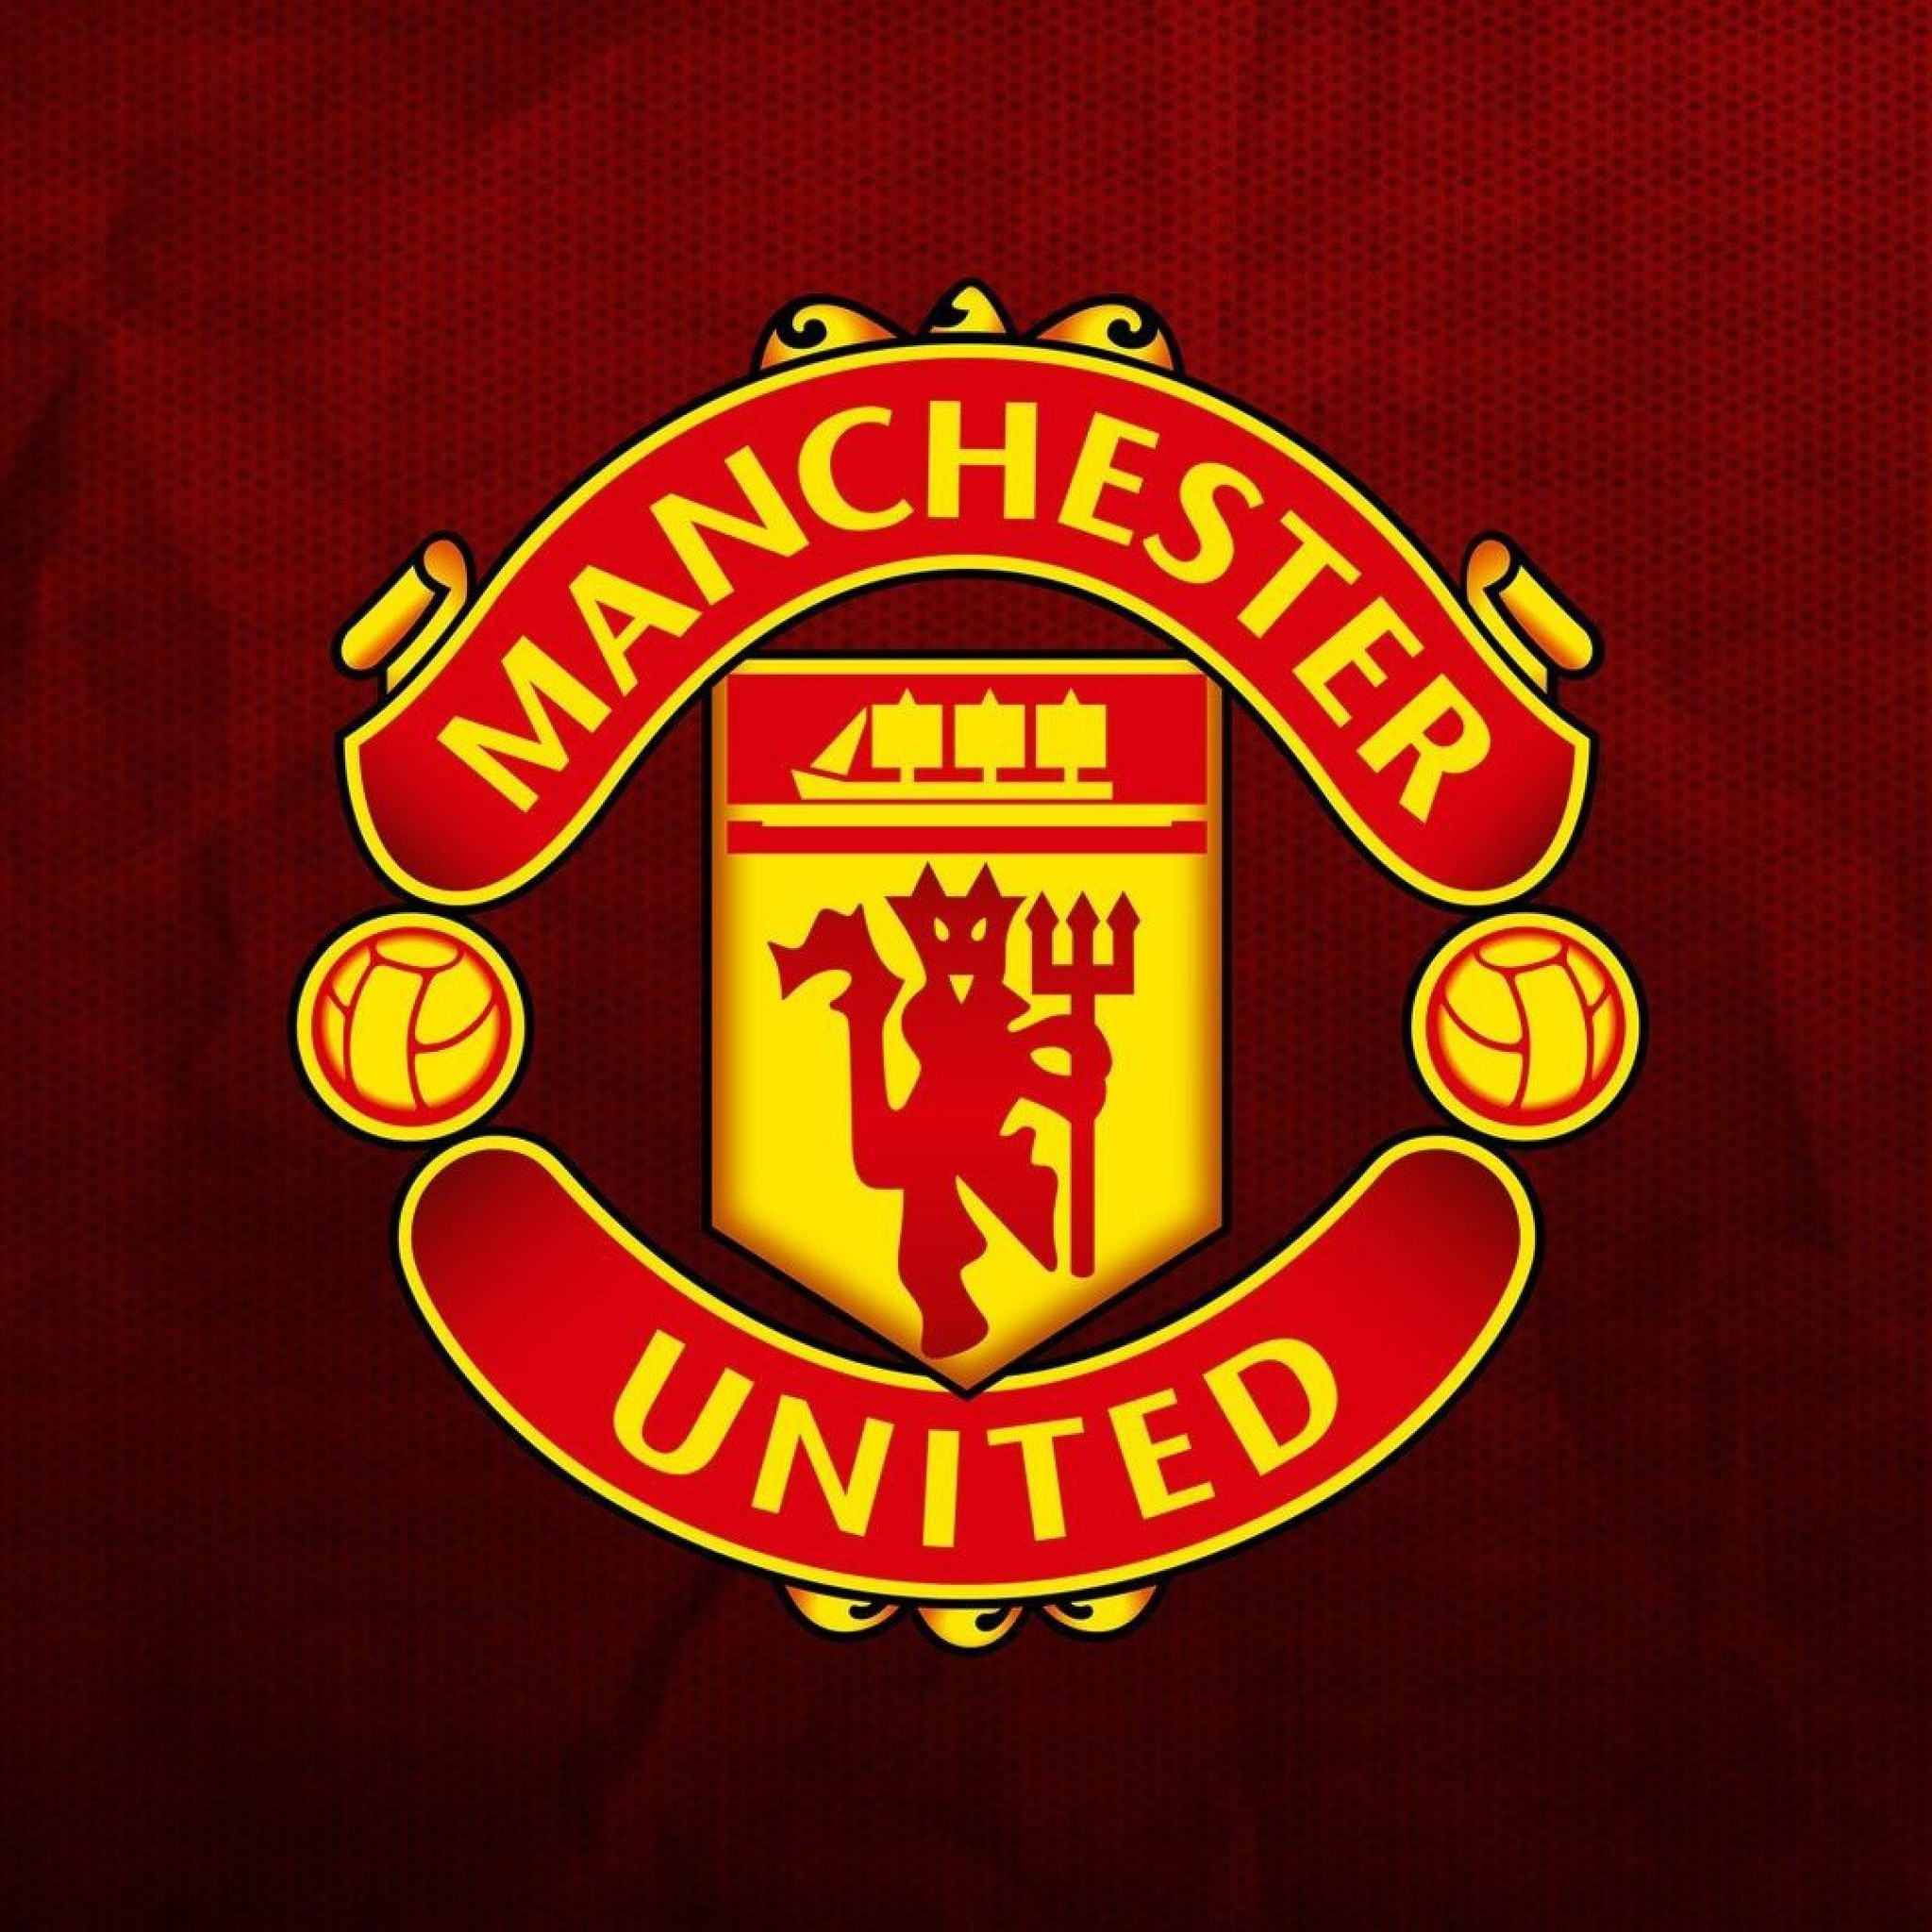 manchester united wallpaper | manchester united logo | manchester